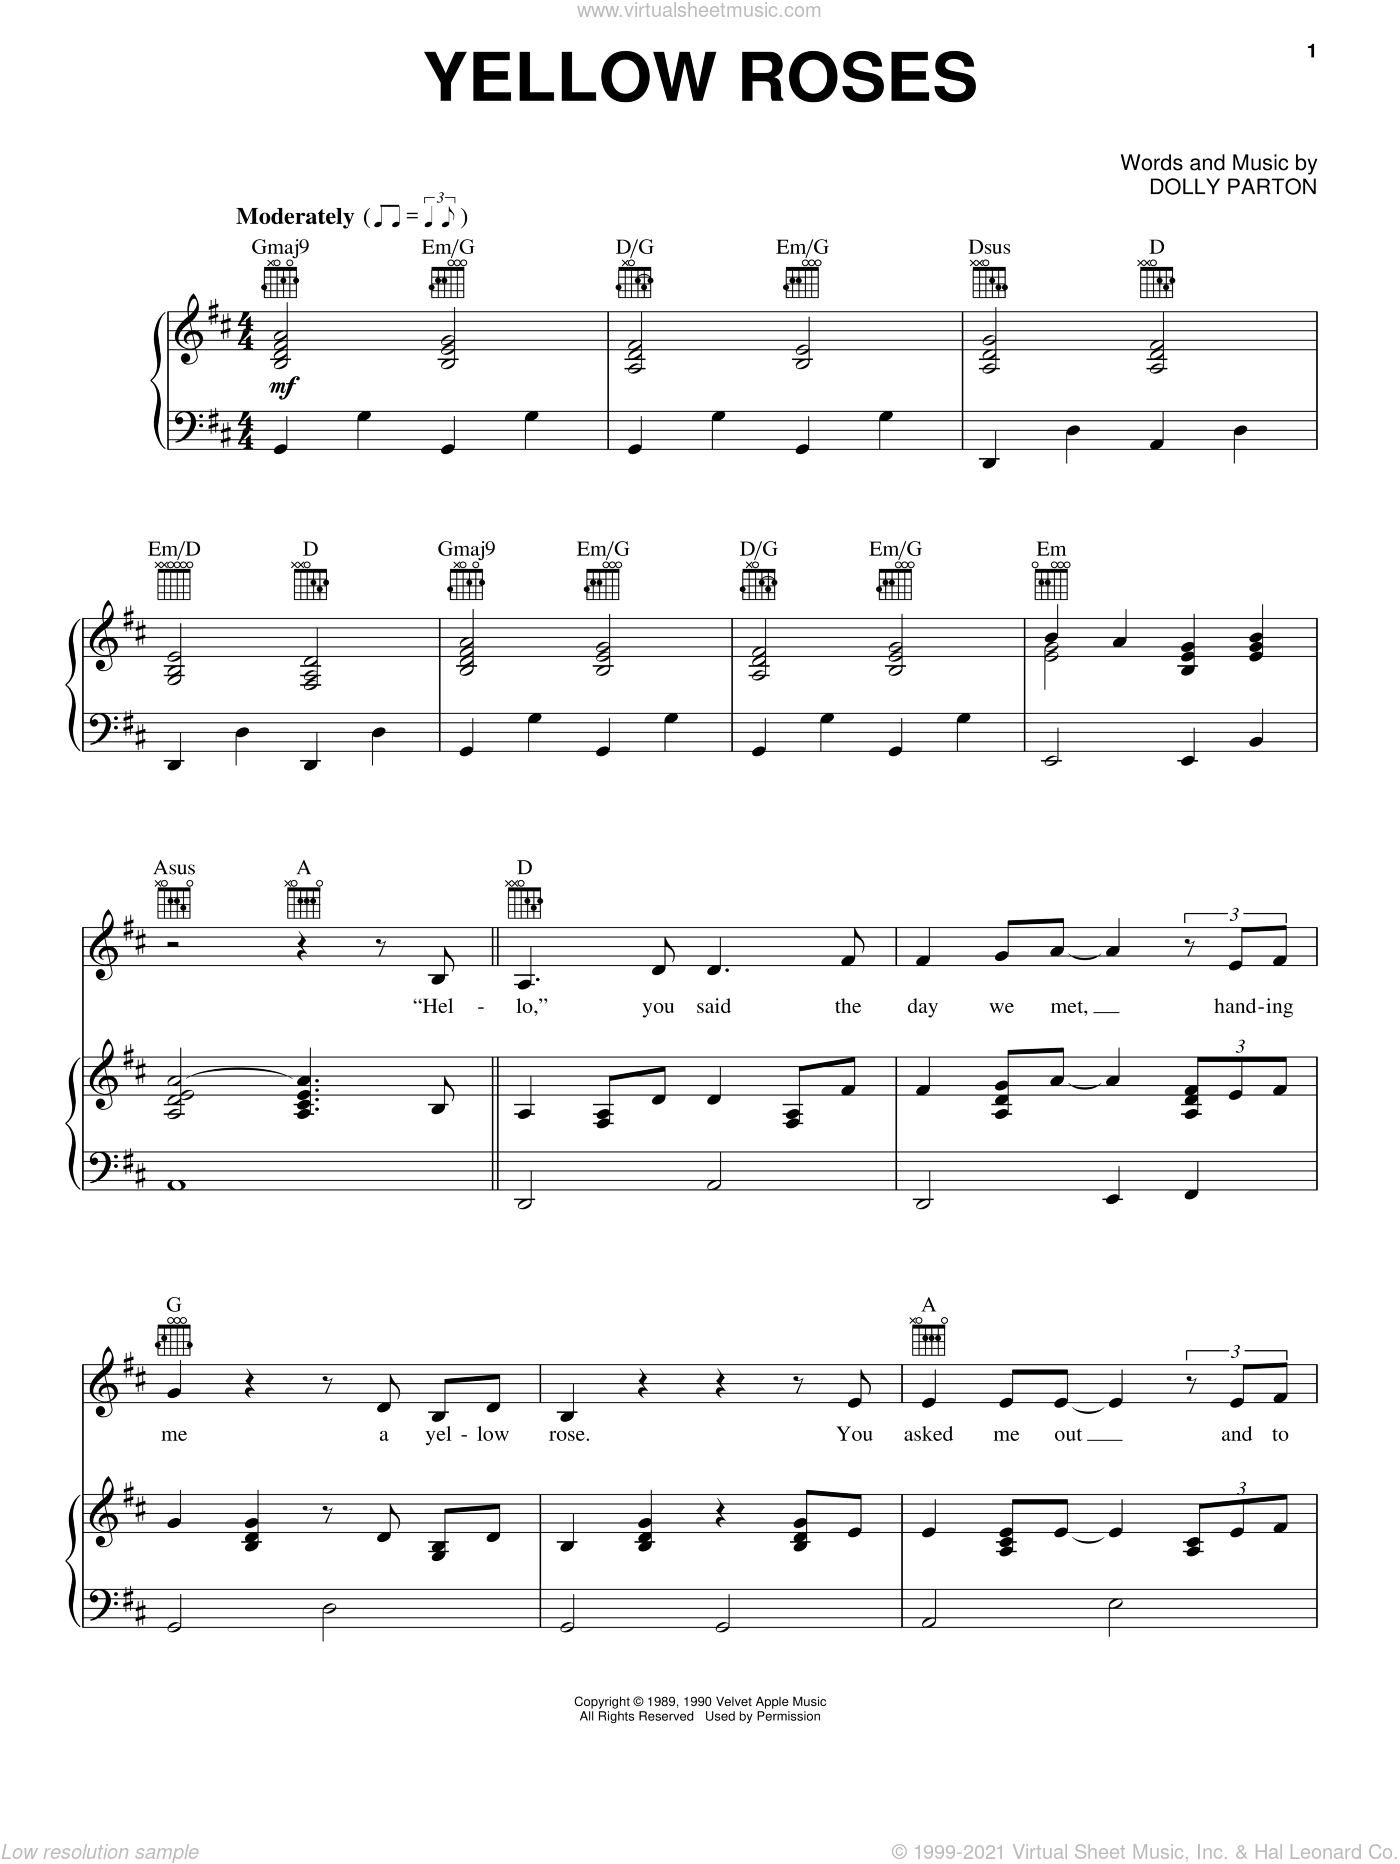 Yellow Roses sheet music for voice, piano or guitar by Dolly Parton, intermediate skill level